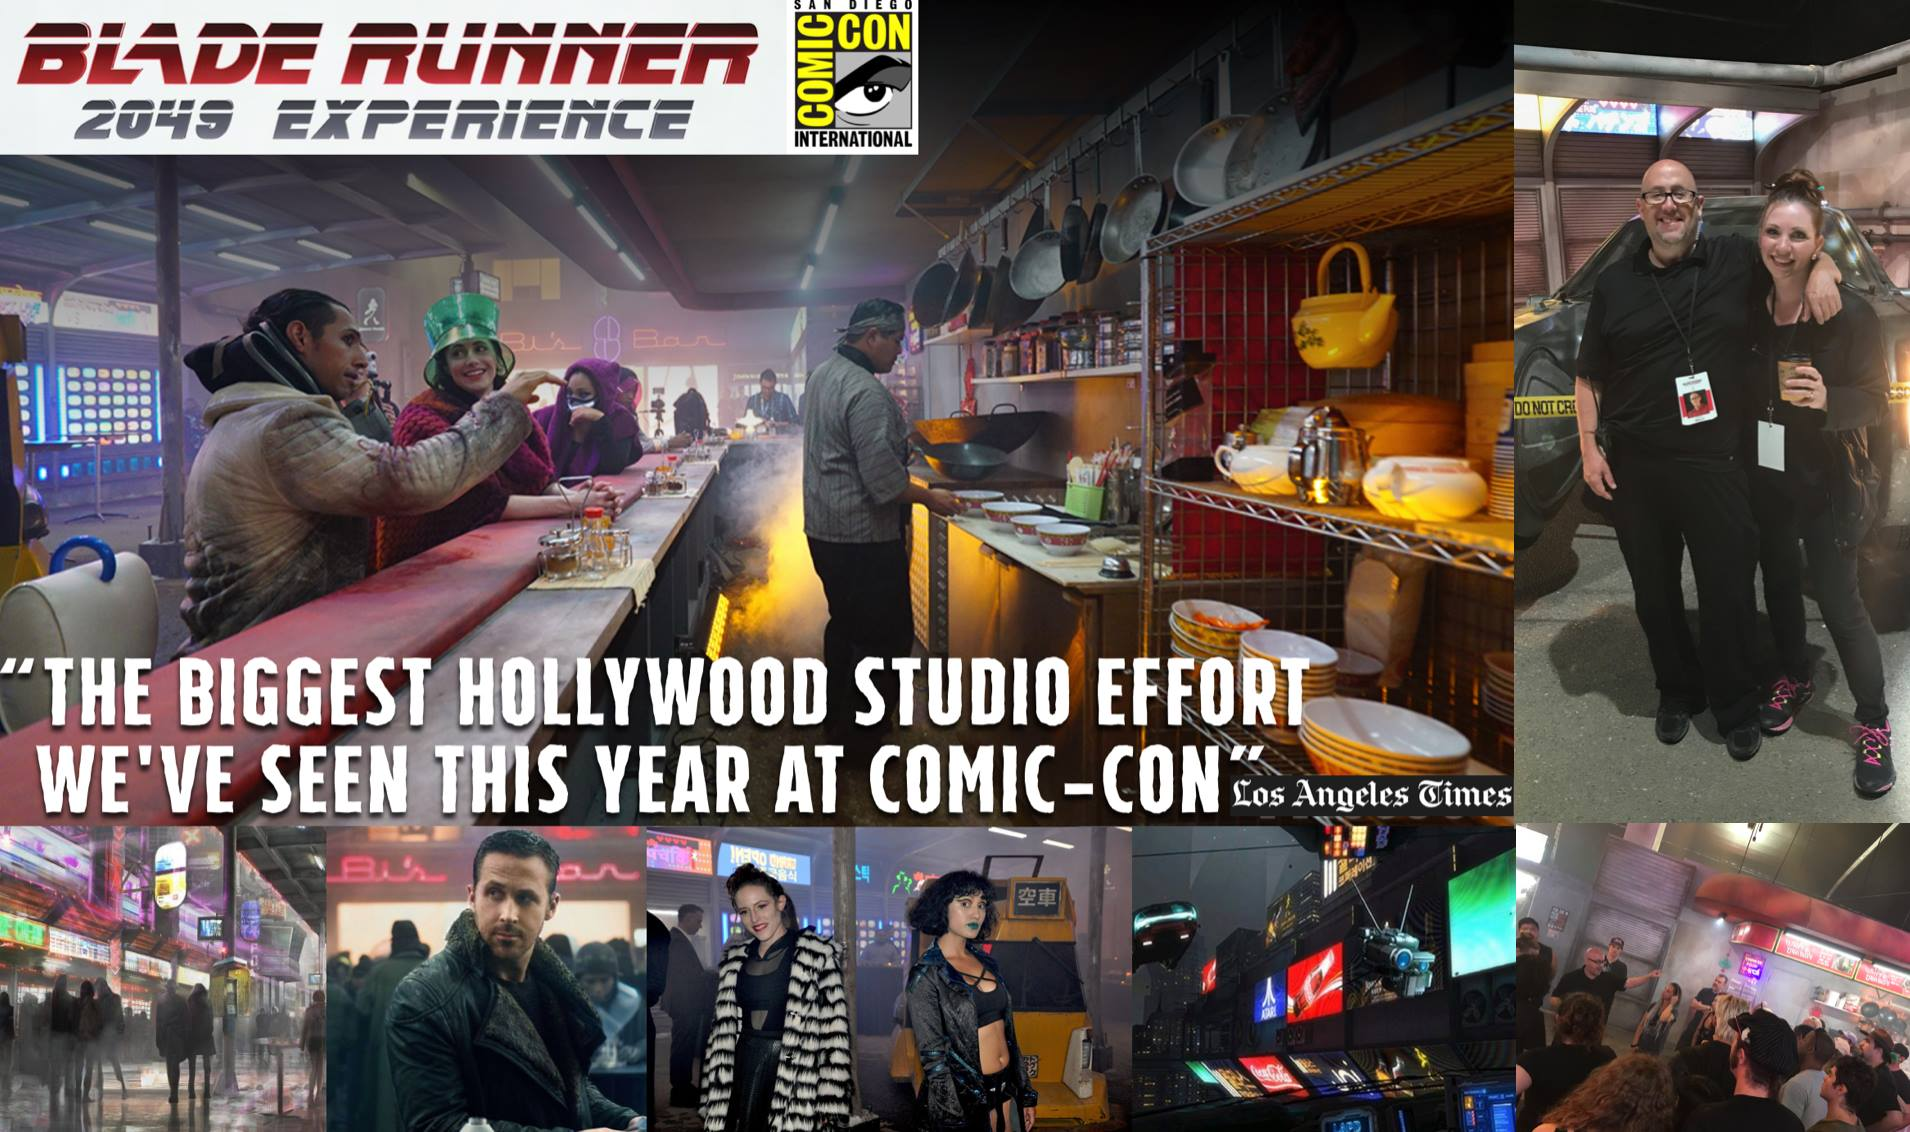 Adrienne_Whitney_Papp_Comic_Con_2017_Blade_Runner_2049_Experience_Alcon_LA_Times_Quote